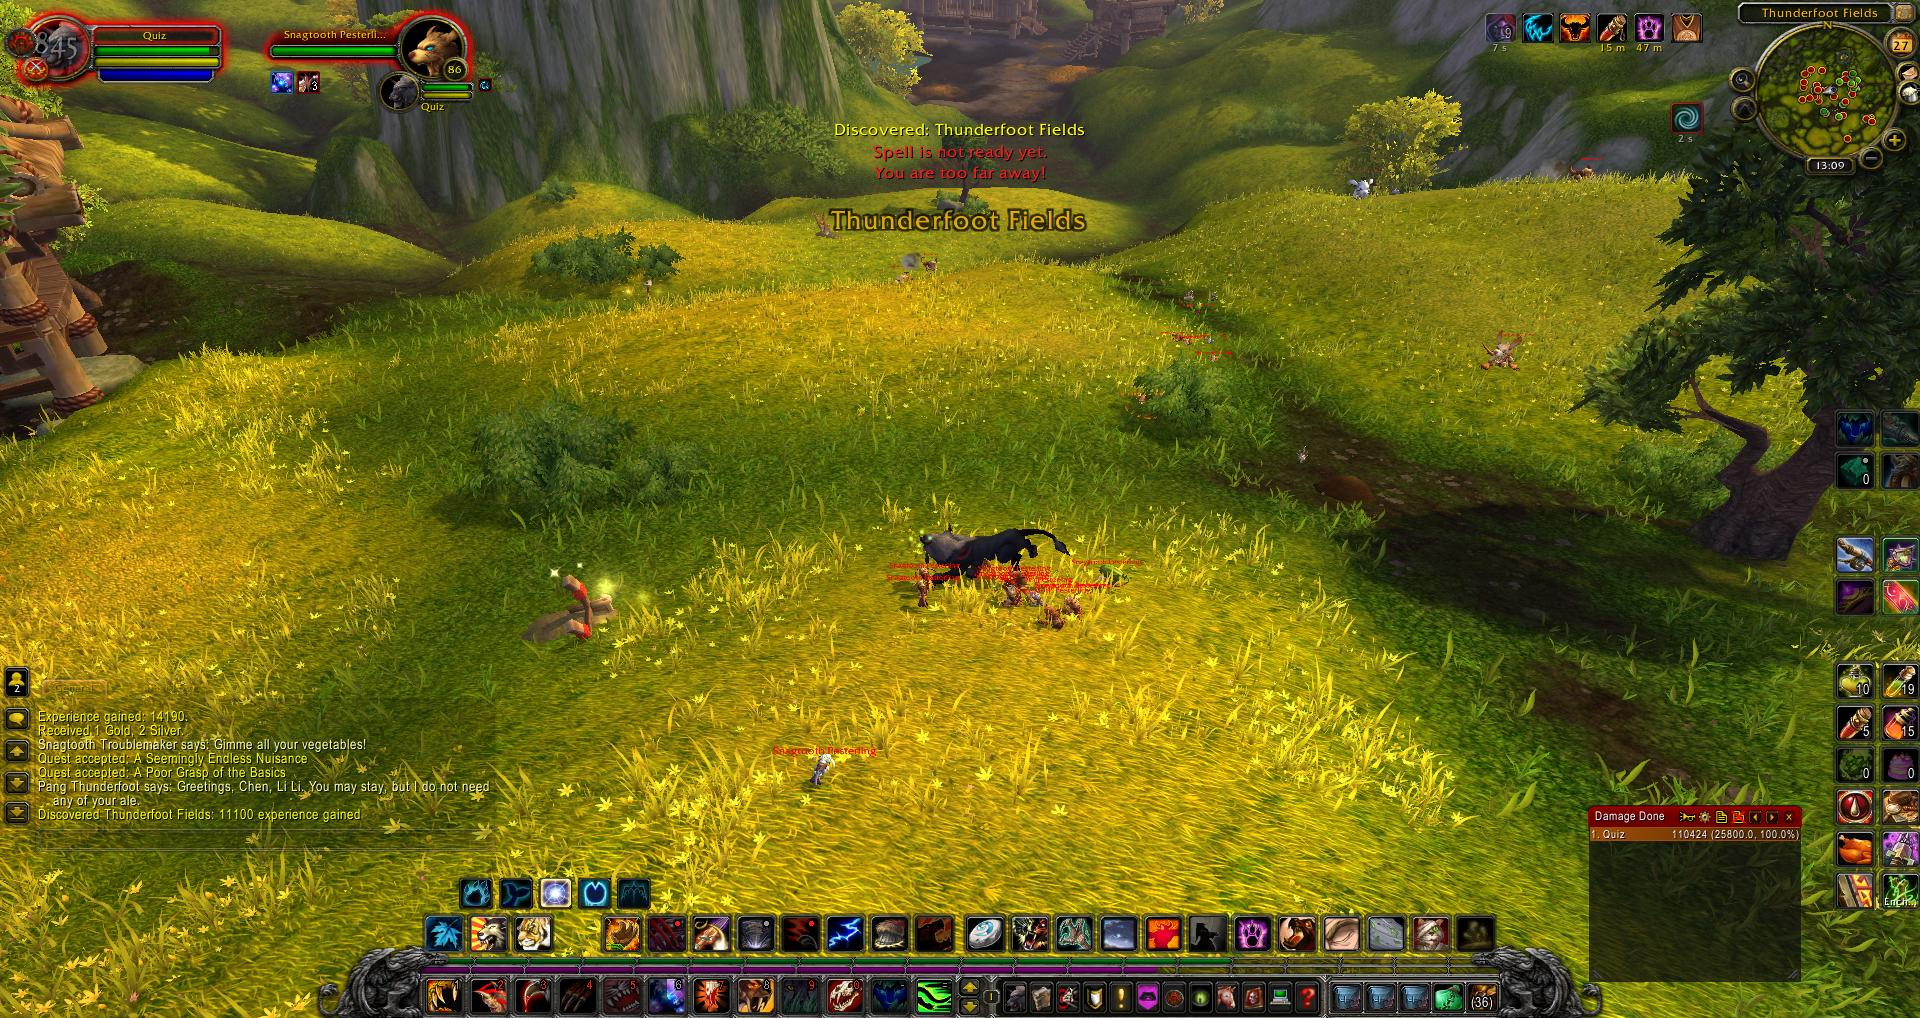 Thunderfoot Fields wow screenshot